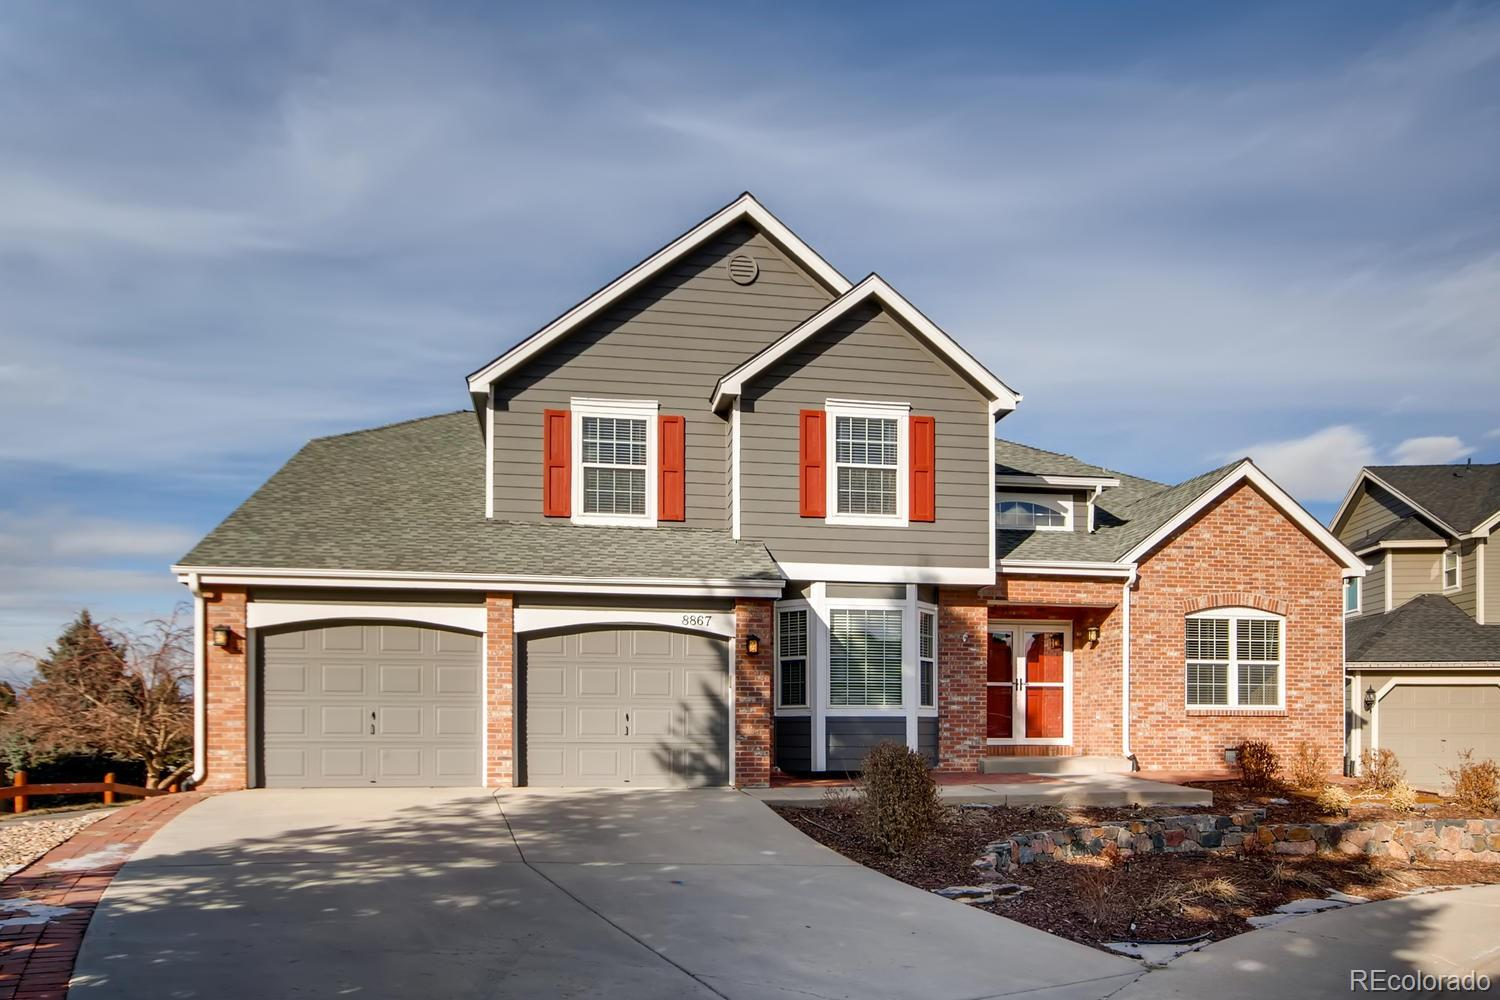 8867 Chestnut Hill Court, Highlands Ranch, CO 80130 - Highlands Ranch, CO real estate listing